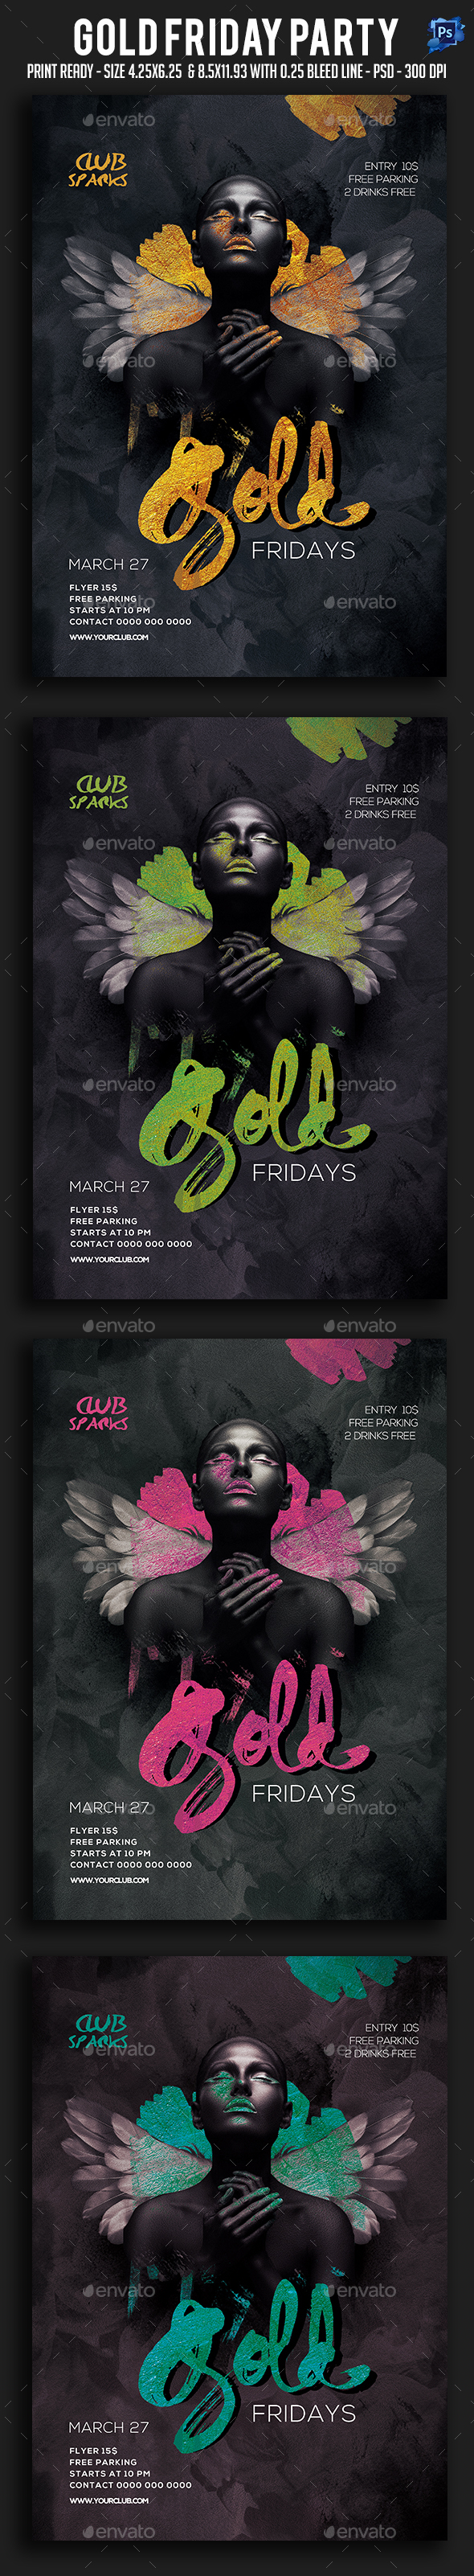 Gold Friday Party Flyer - Clubs & Parties Events